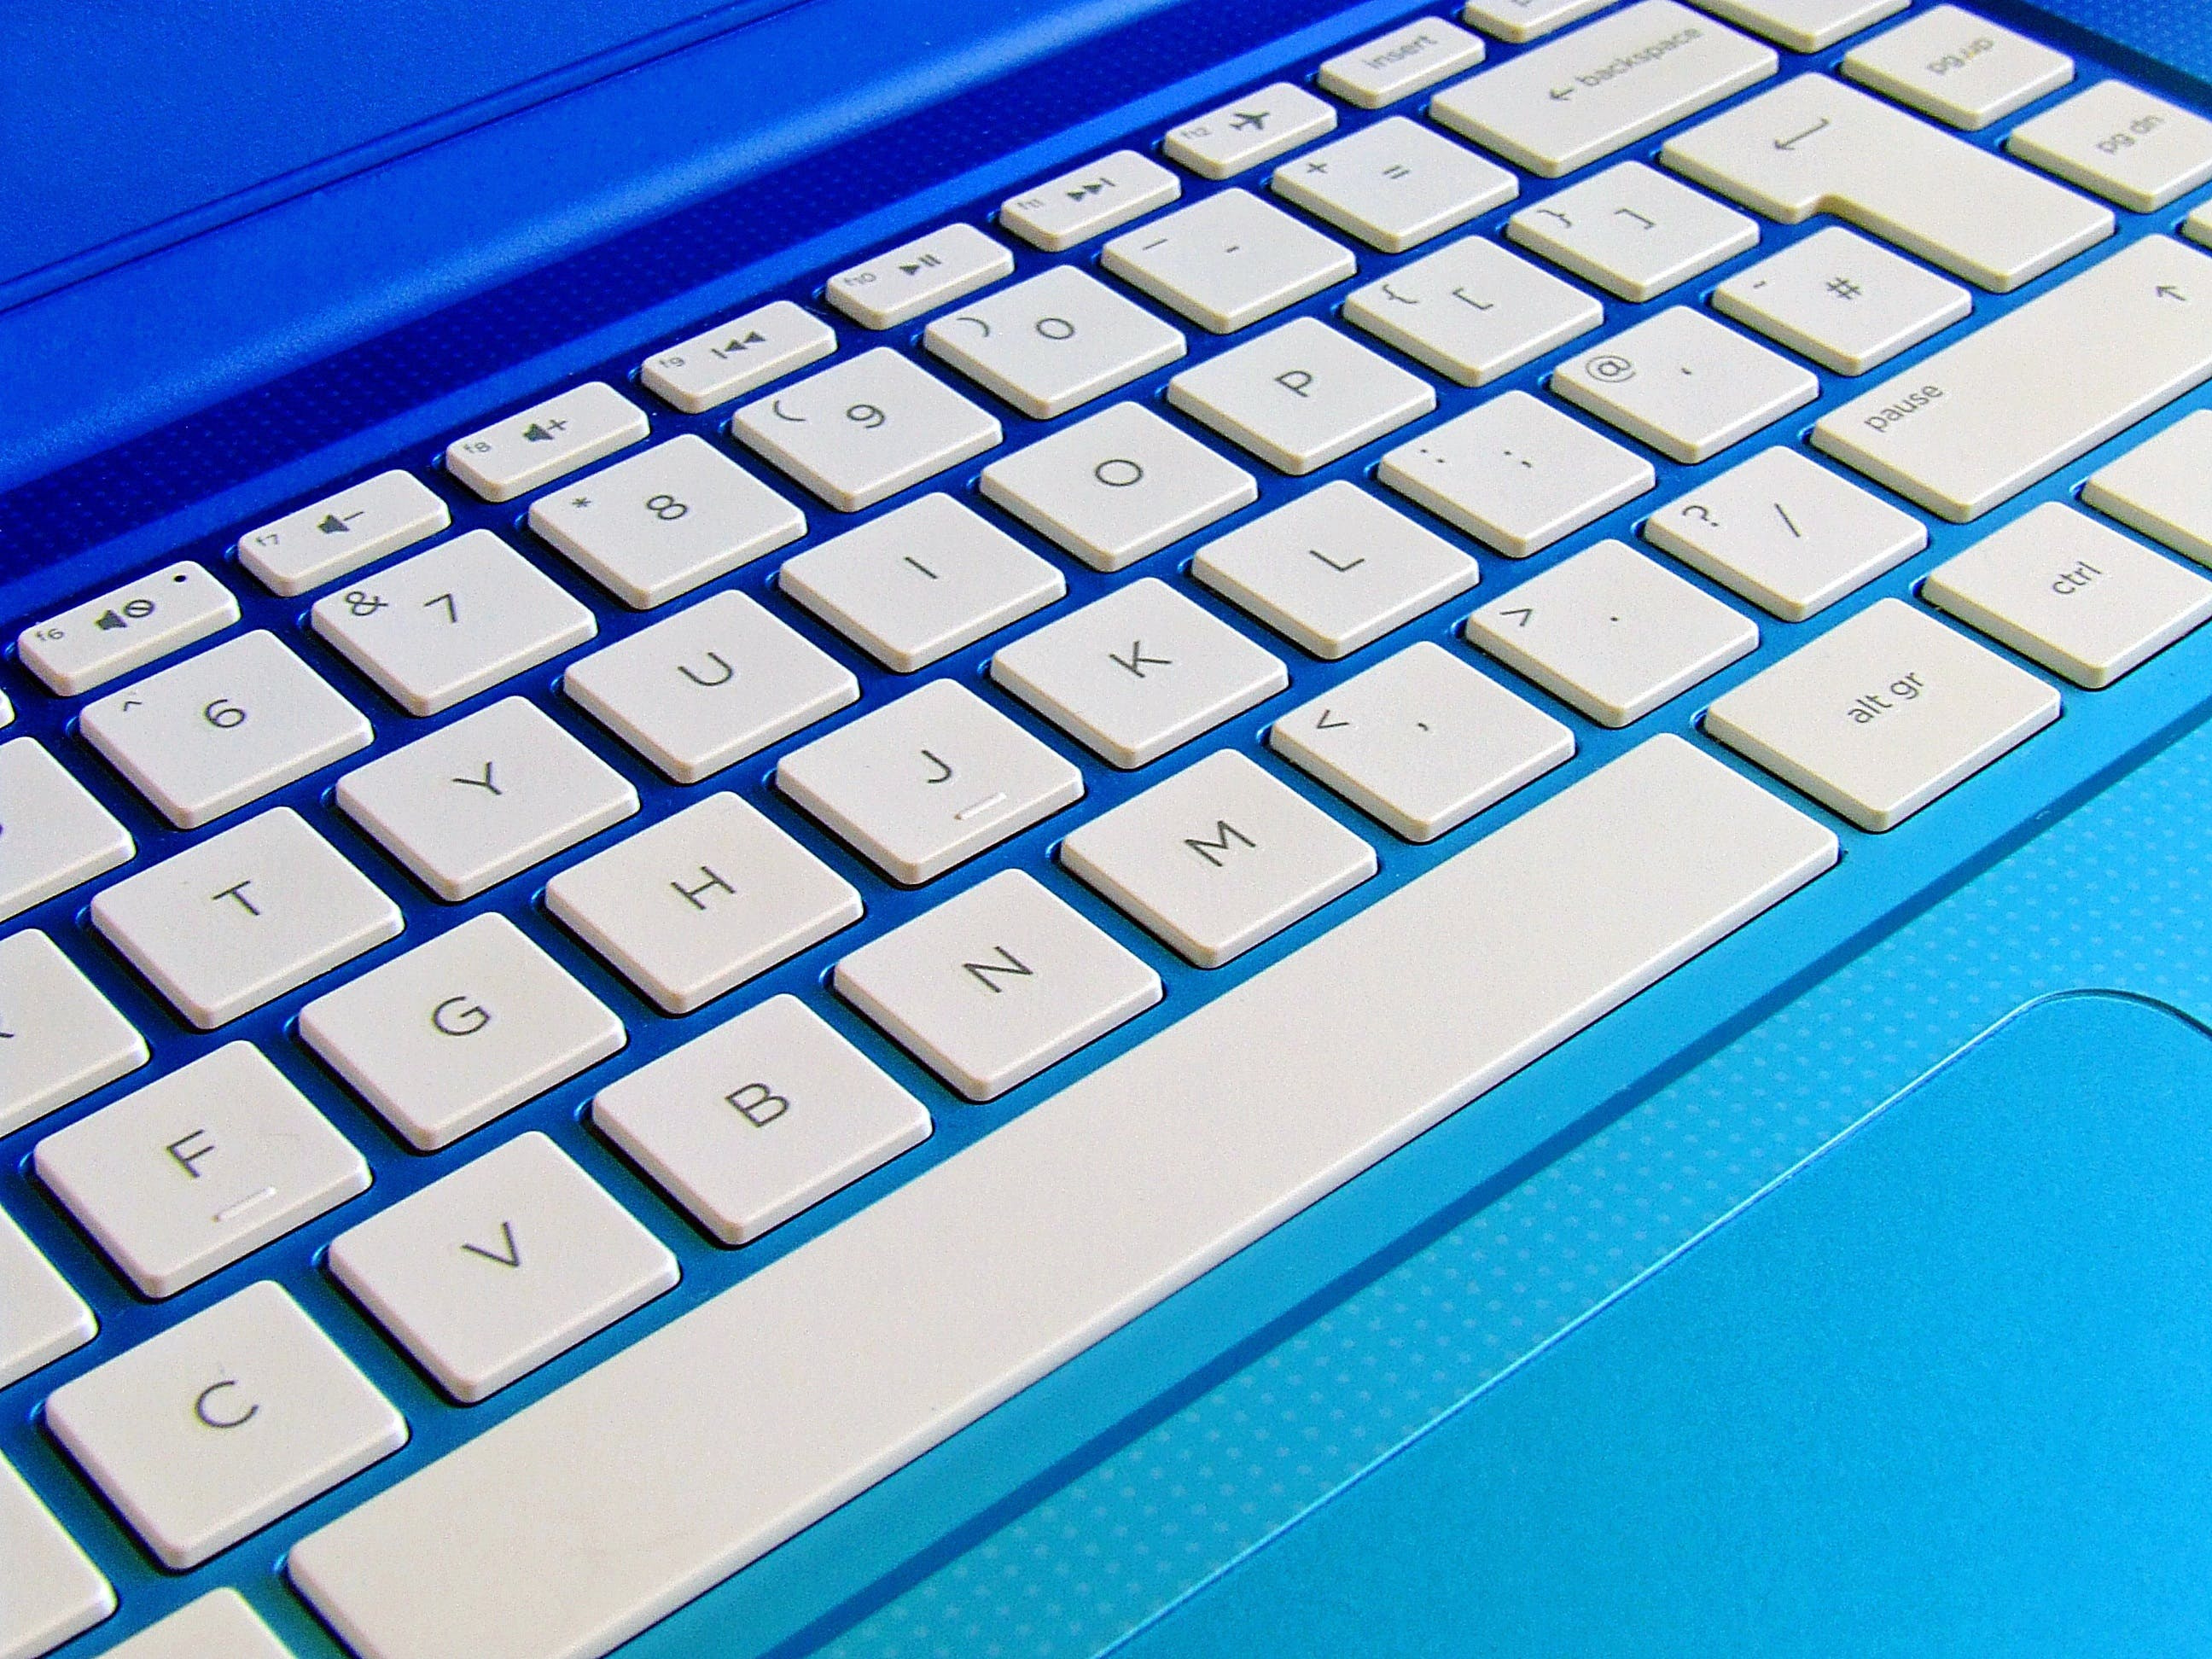 Blue Laptop Computer